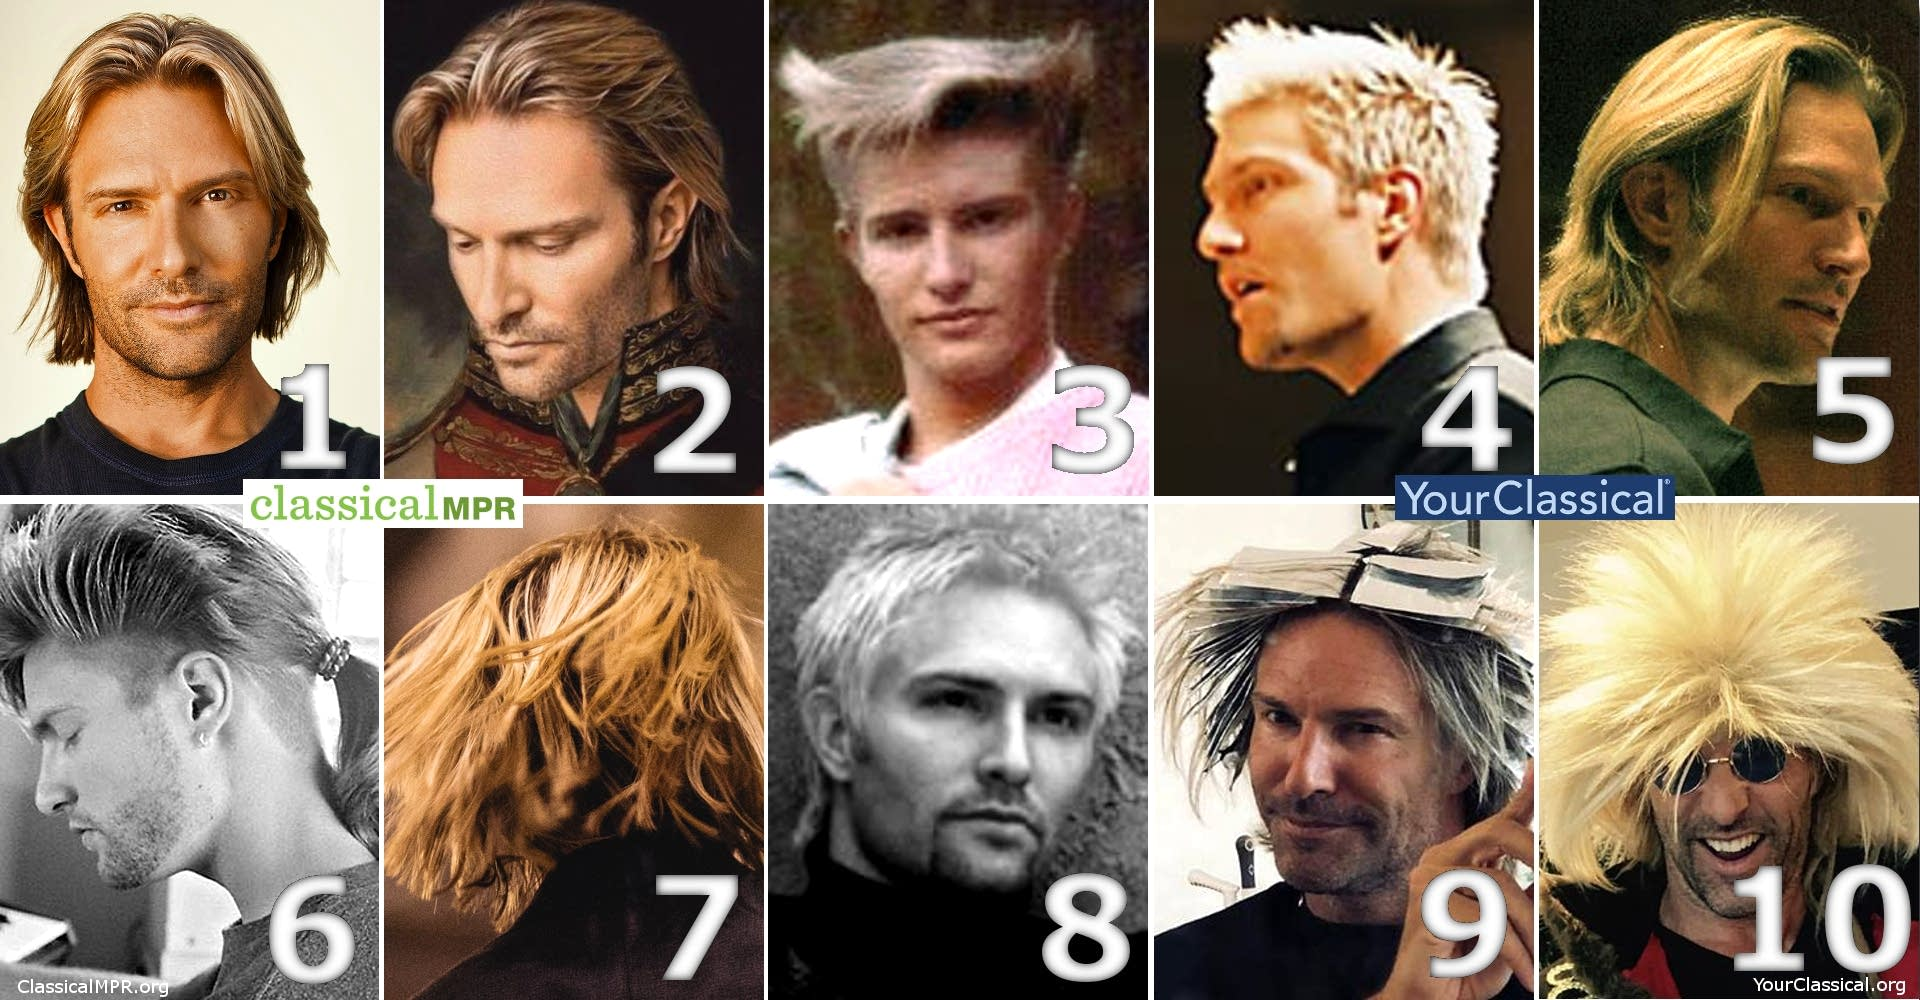 On a scale of Eric Whitacre's hair, how are you feeling today?